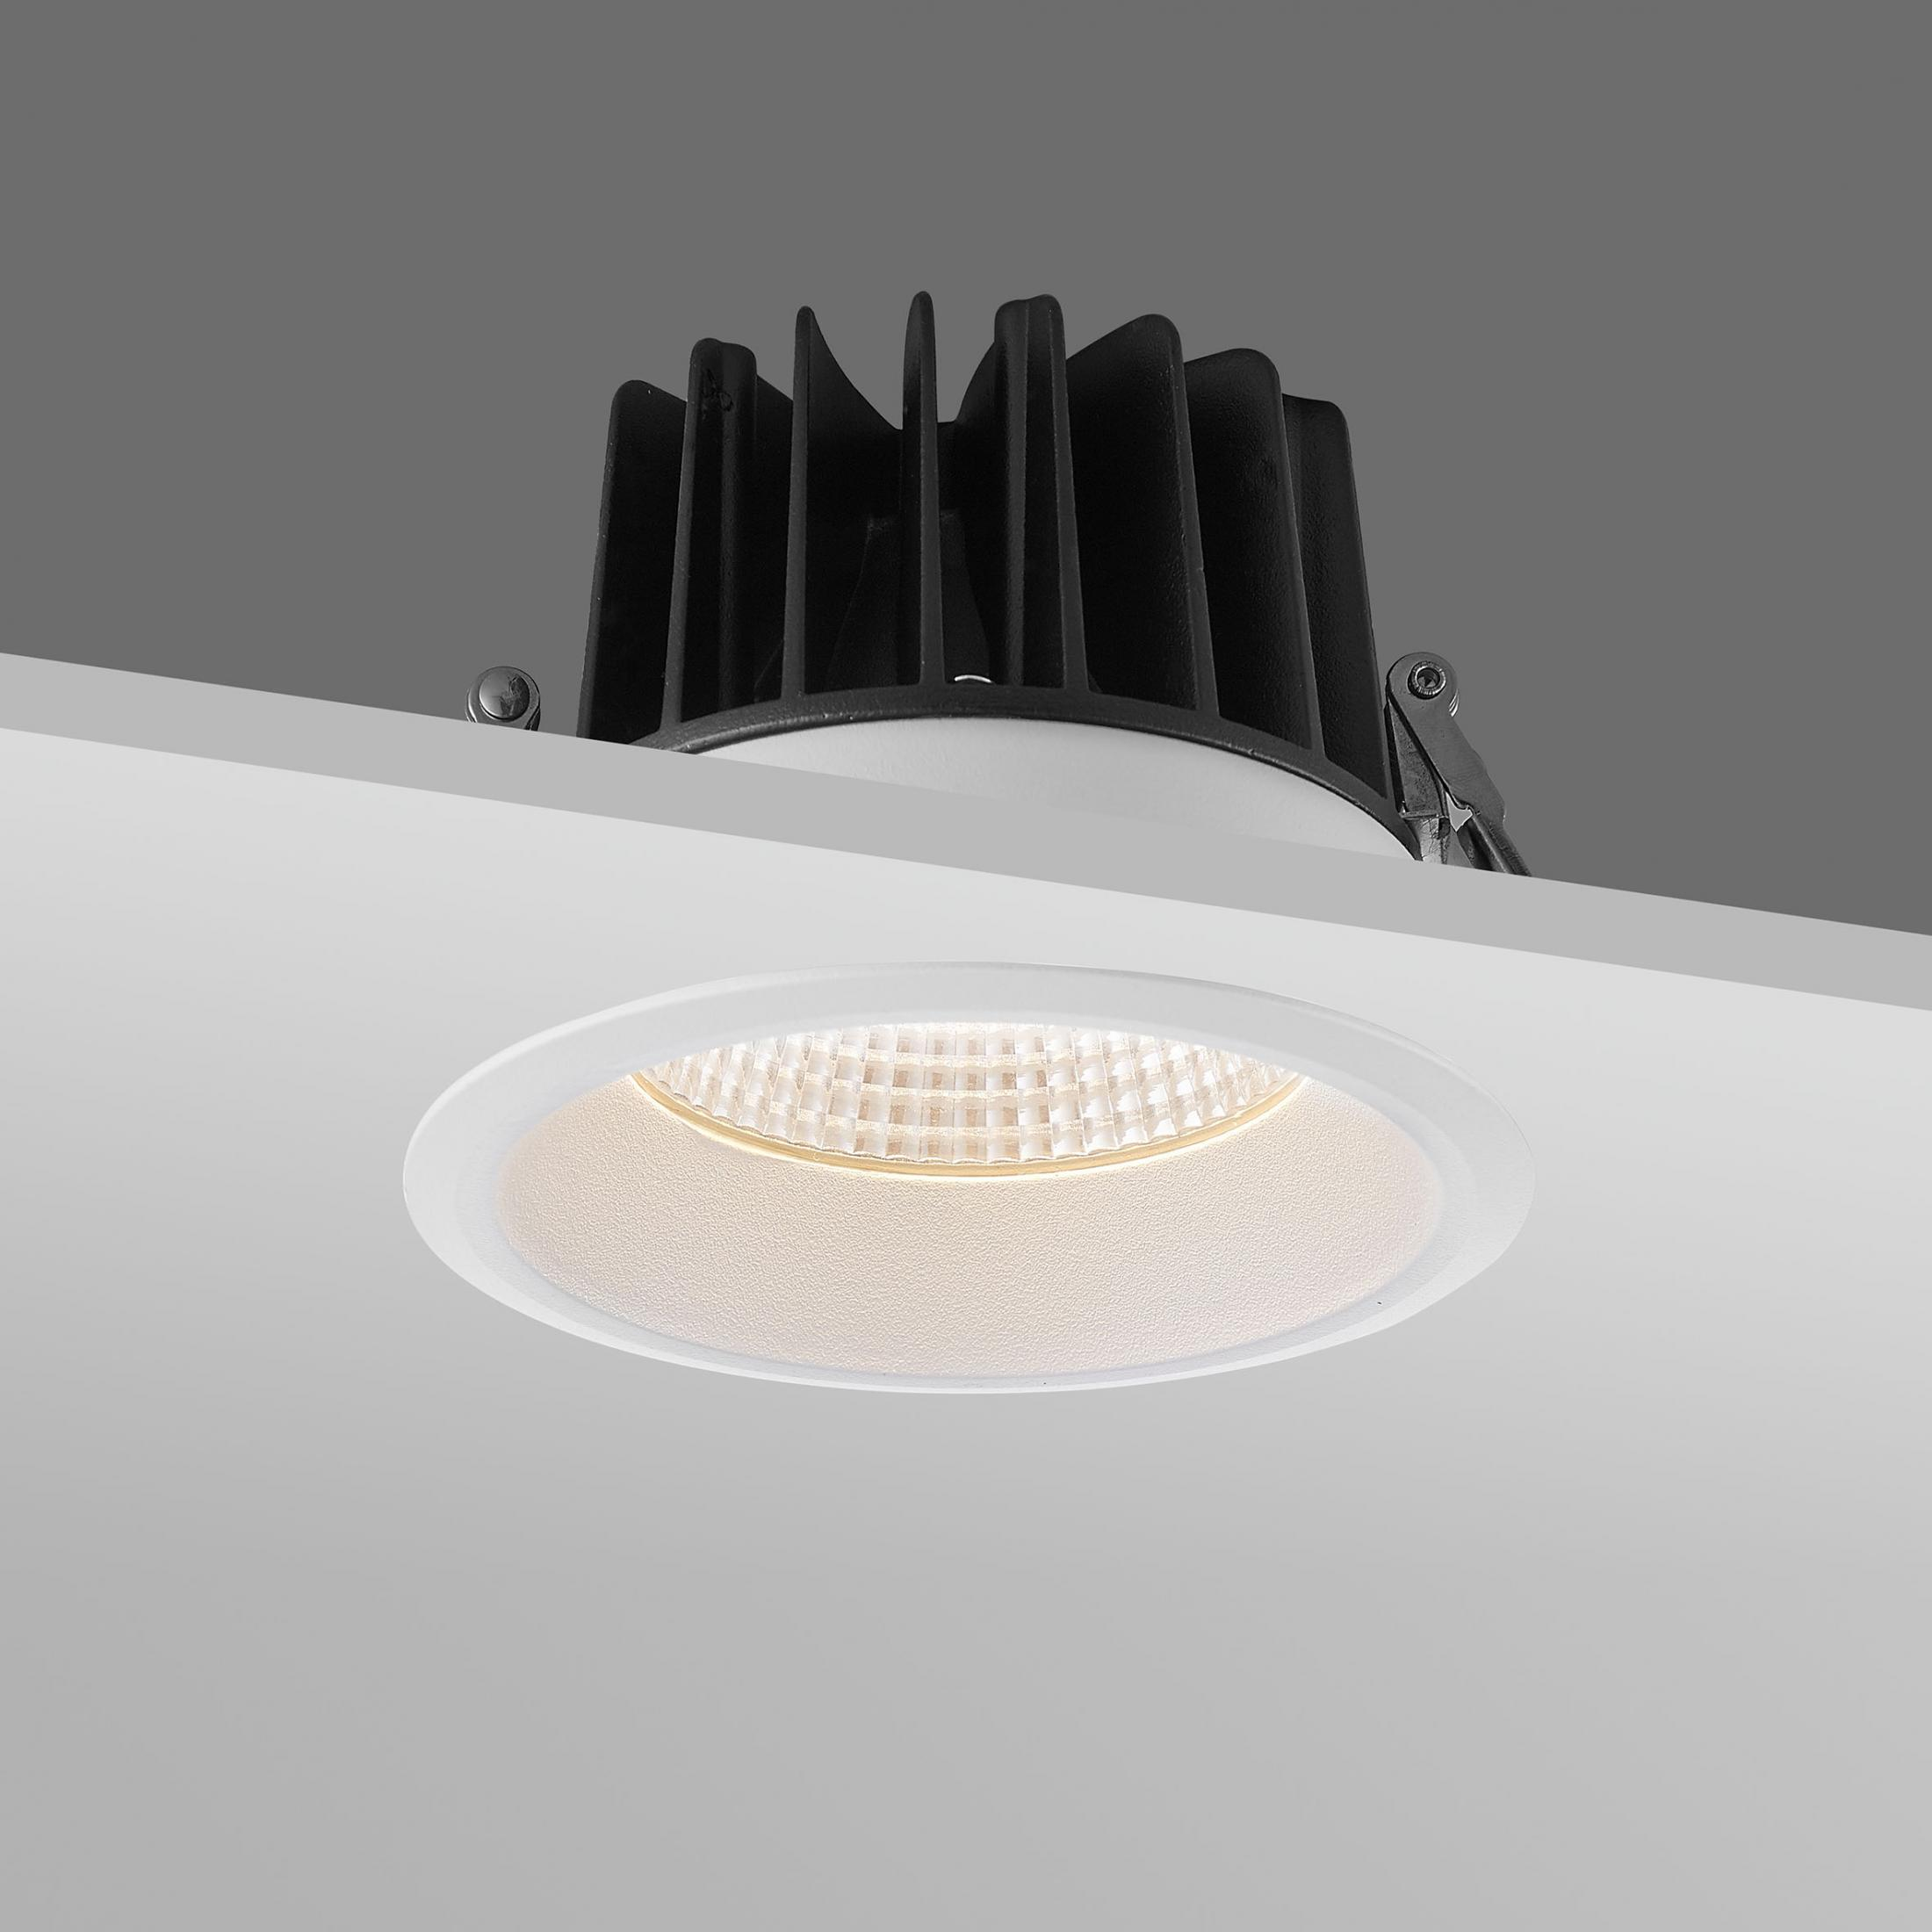 15w cob led recessed downlight